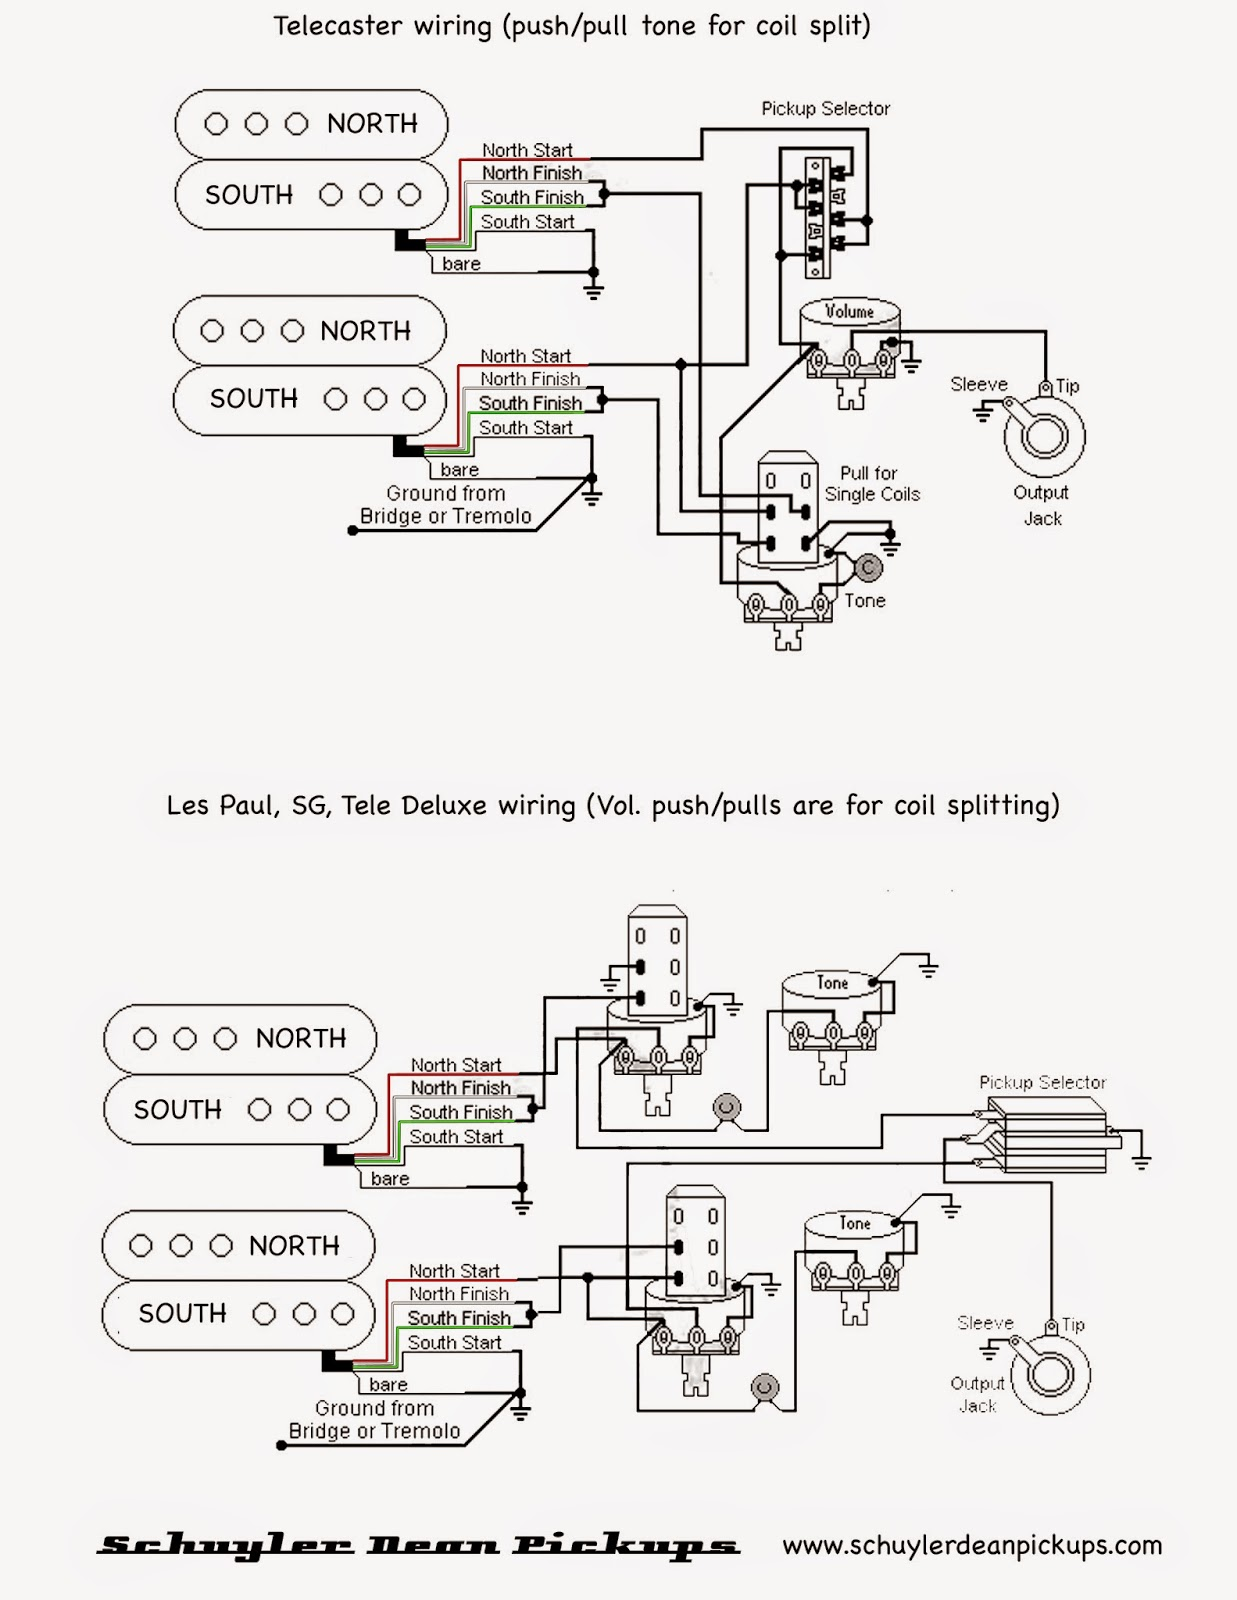 Wiring%2Bdiagram%2BTele LP schuyler dean pickups 2014 2 single coil pickup wiring diagram at alyssarenee.co